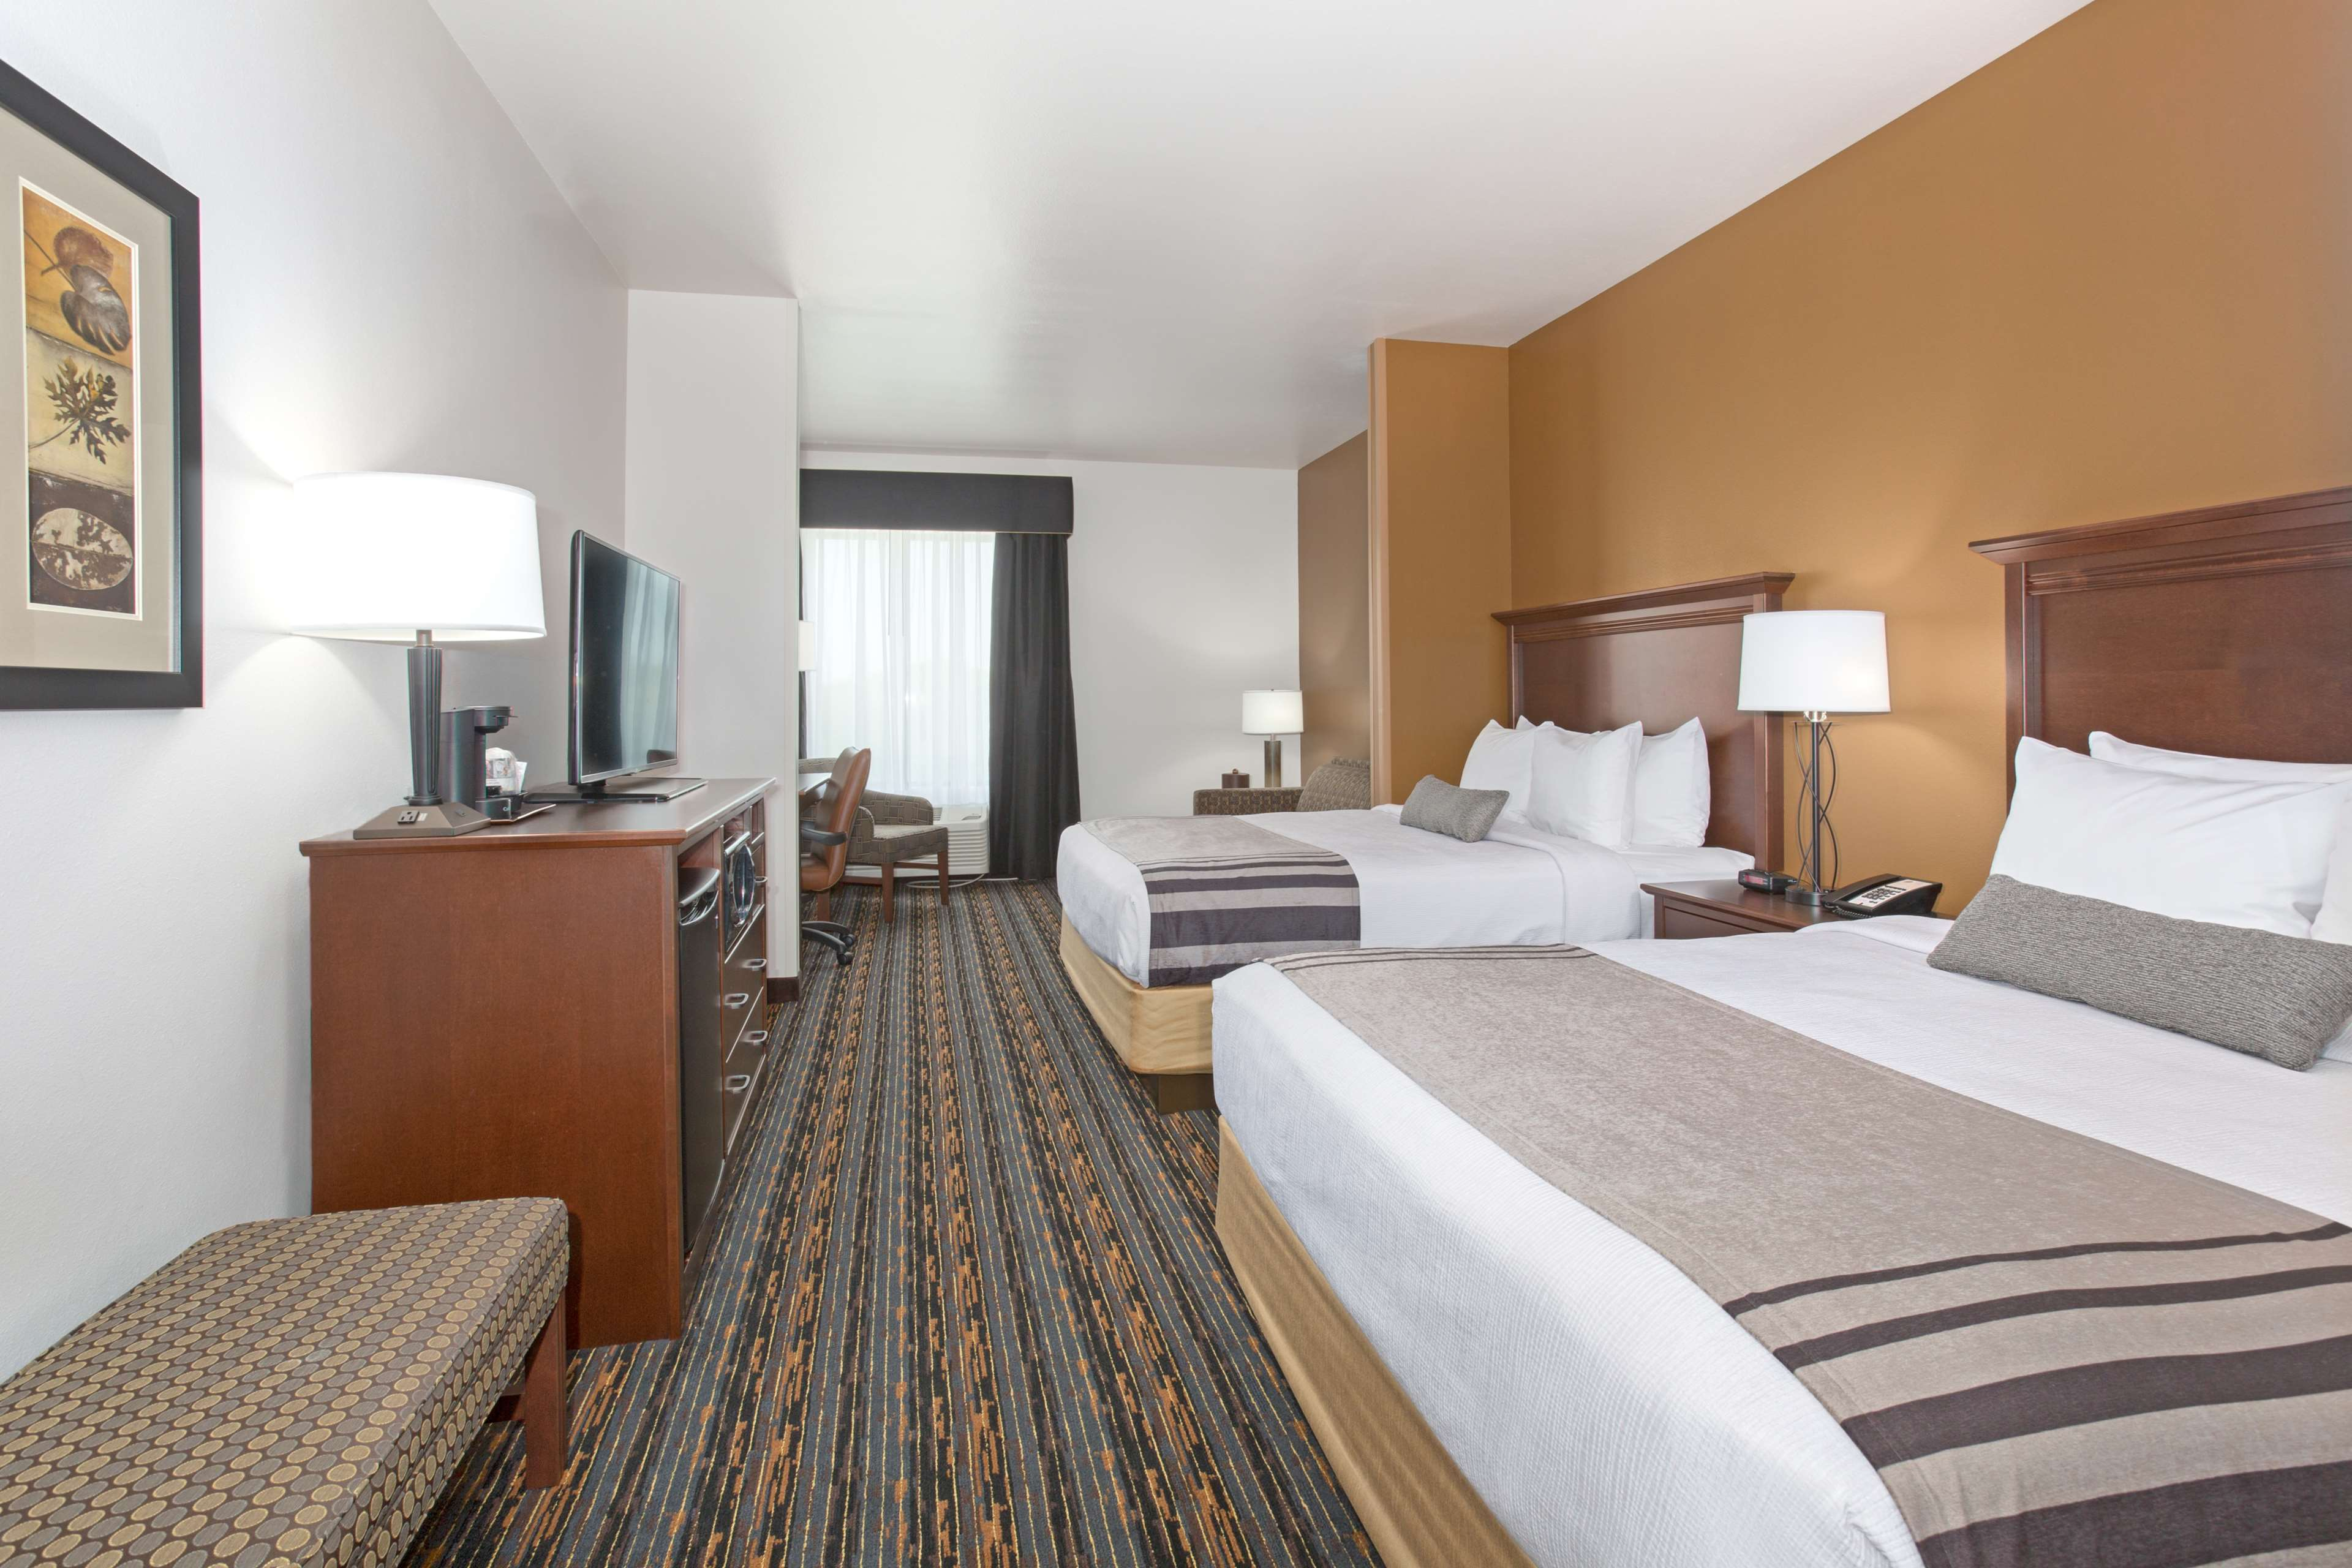 holiday lnkup by suites us ne lincoln hotel hoteldetail extended hotels express and inn holidayinnexpress ihg airport stay en